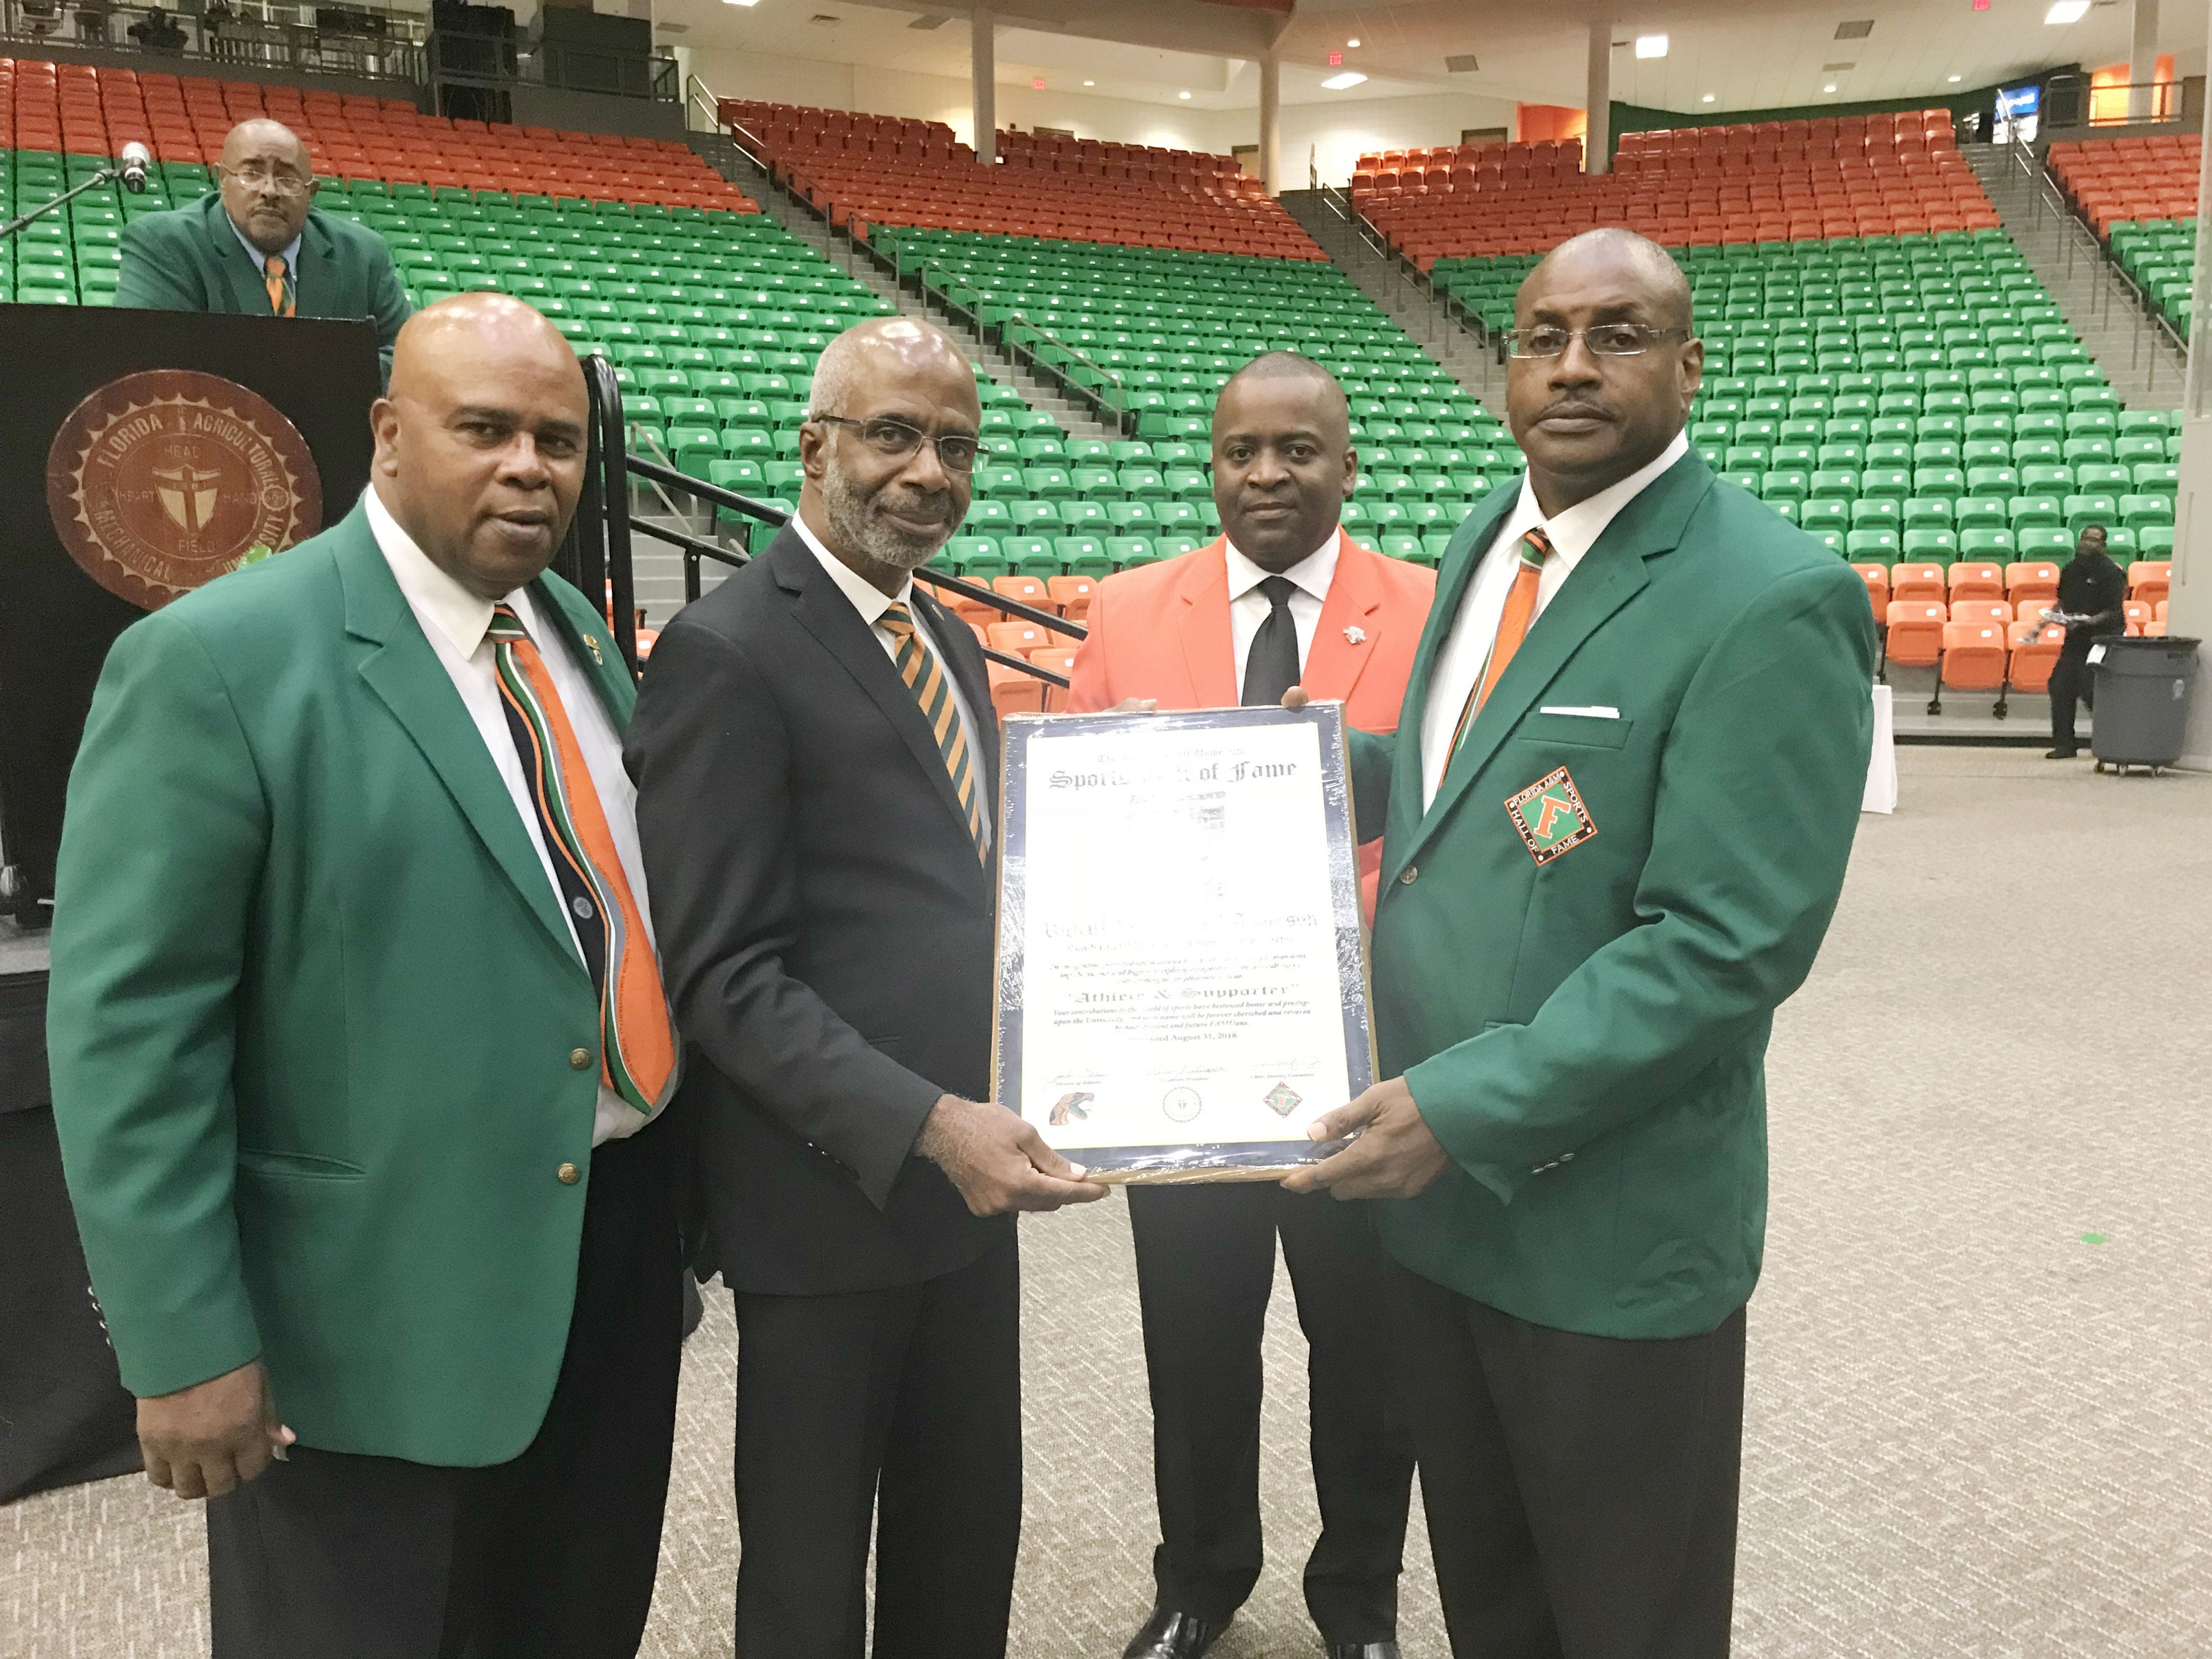 From left to right: Curtis Taylor, FAMU president Dr. Larry Robinson, FAMU National Alumni Association president Gregory Clark present Rick Clark with his Hall of Fame plaque.